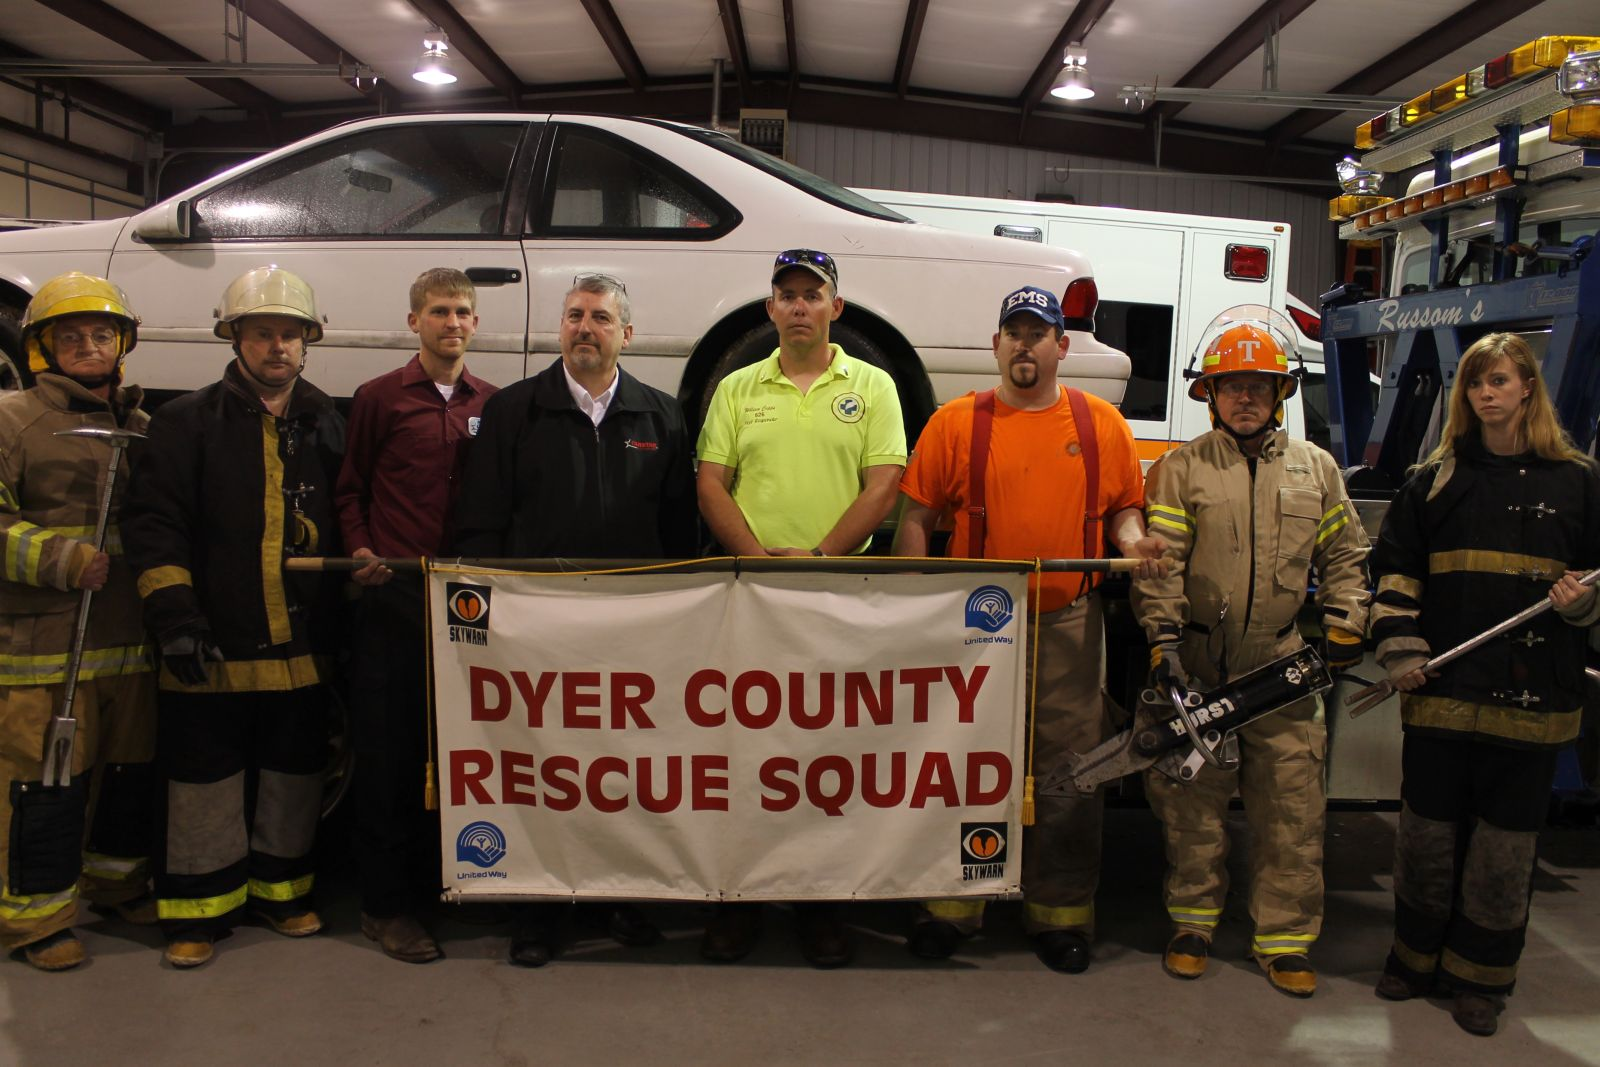 Russom's CARSTAR: Rescue Squad training